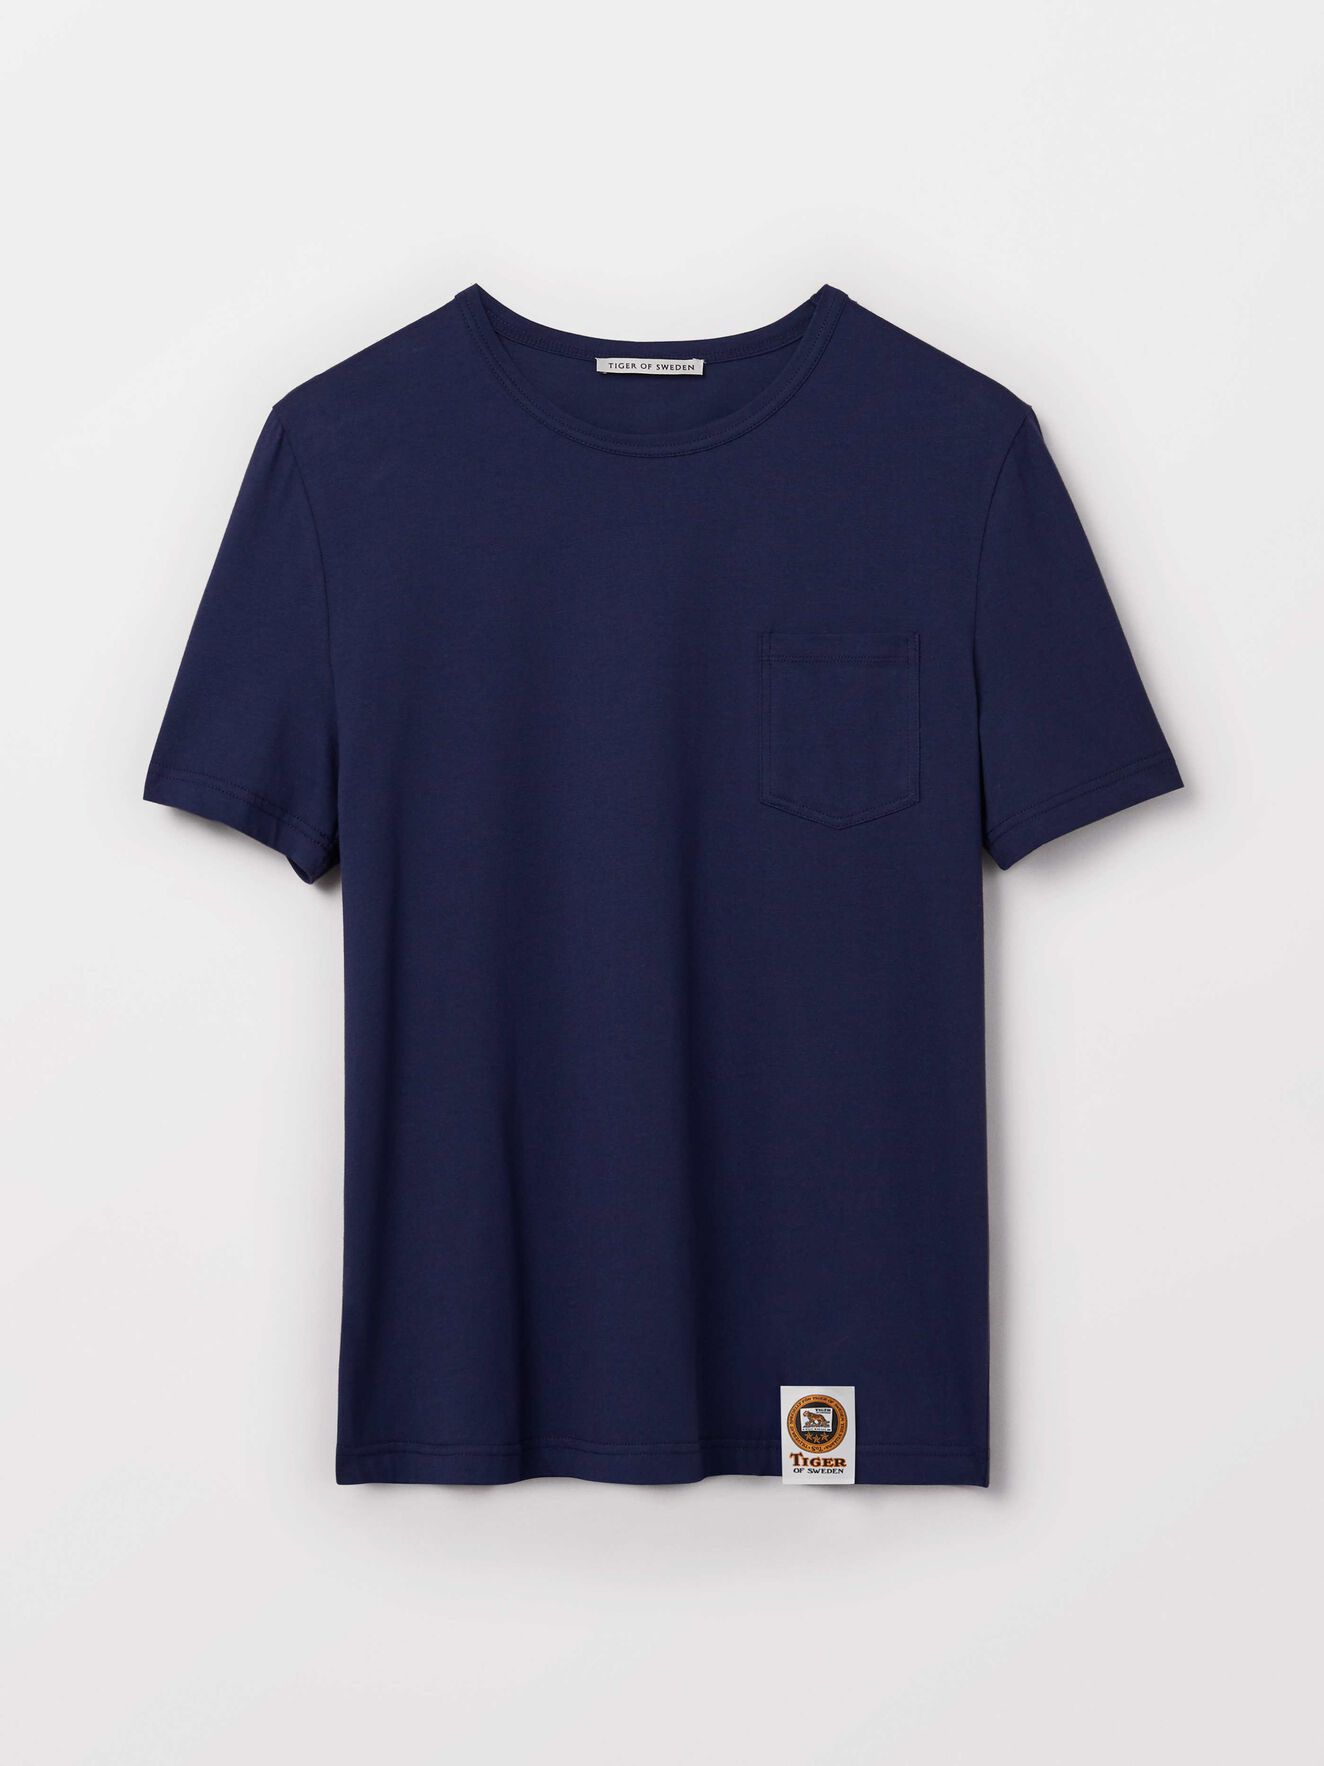 Didelot T-Shirt in Sky Captain from Tiger of Sweden